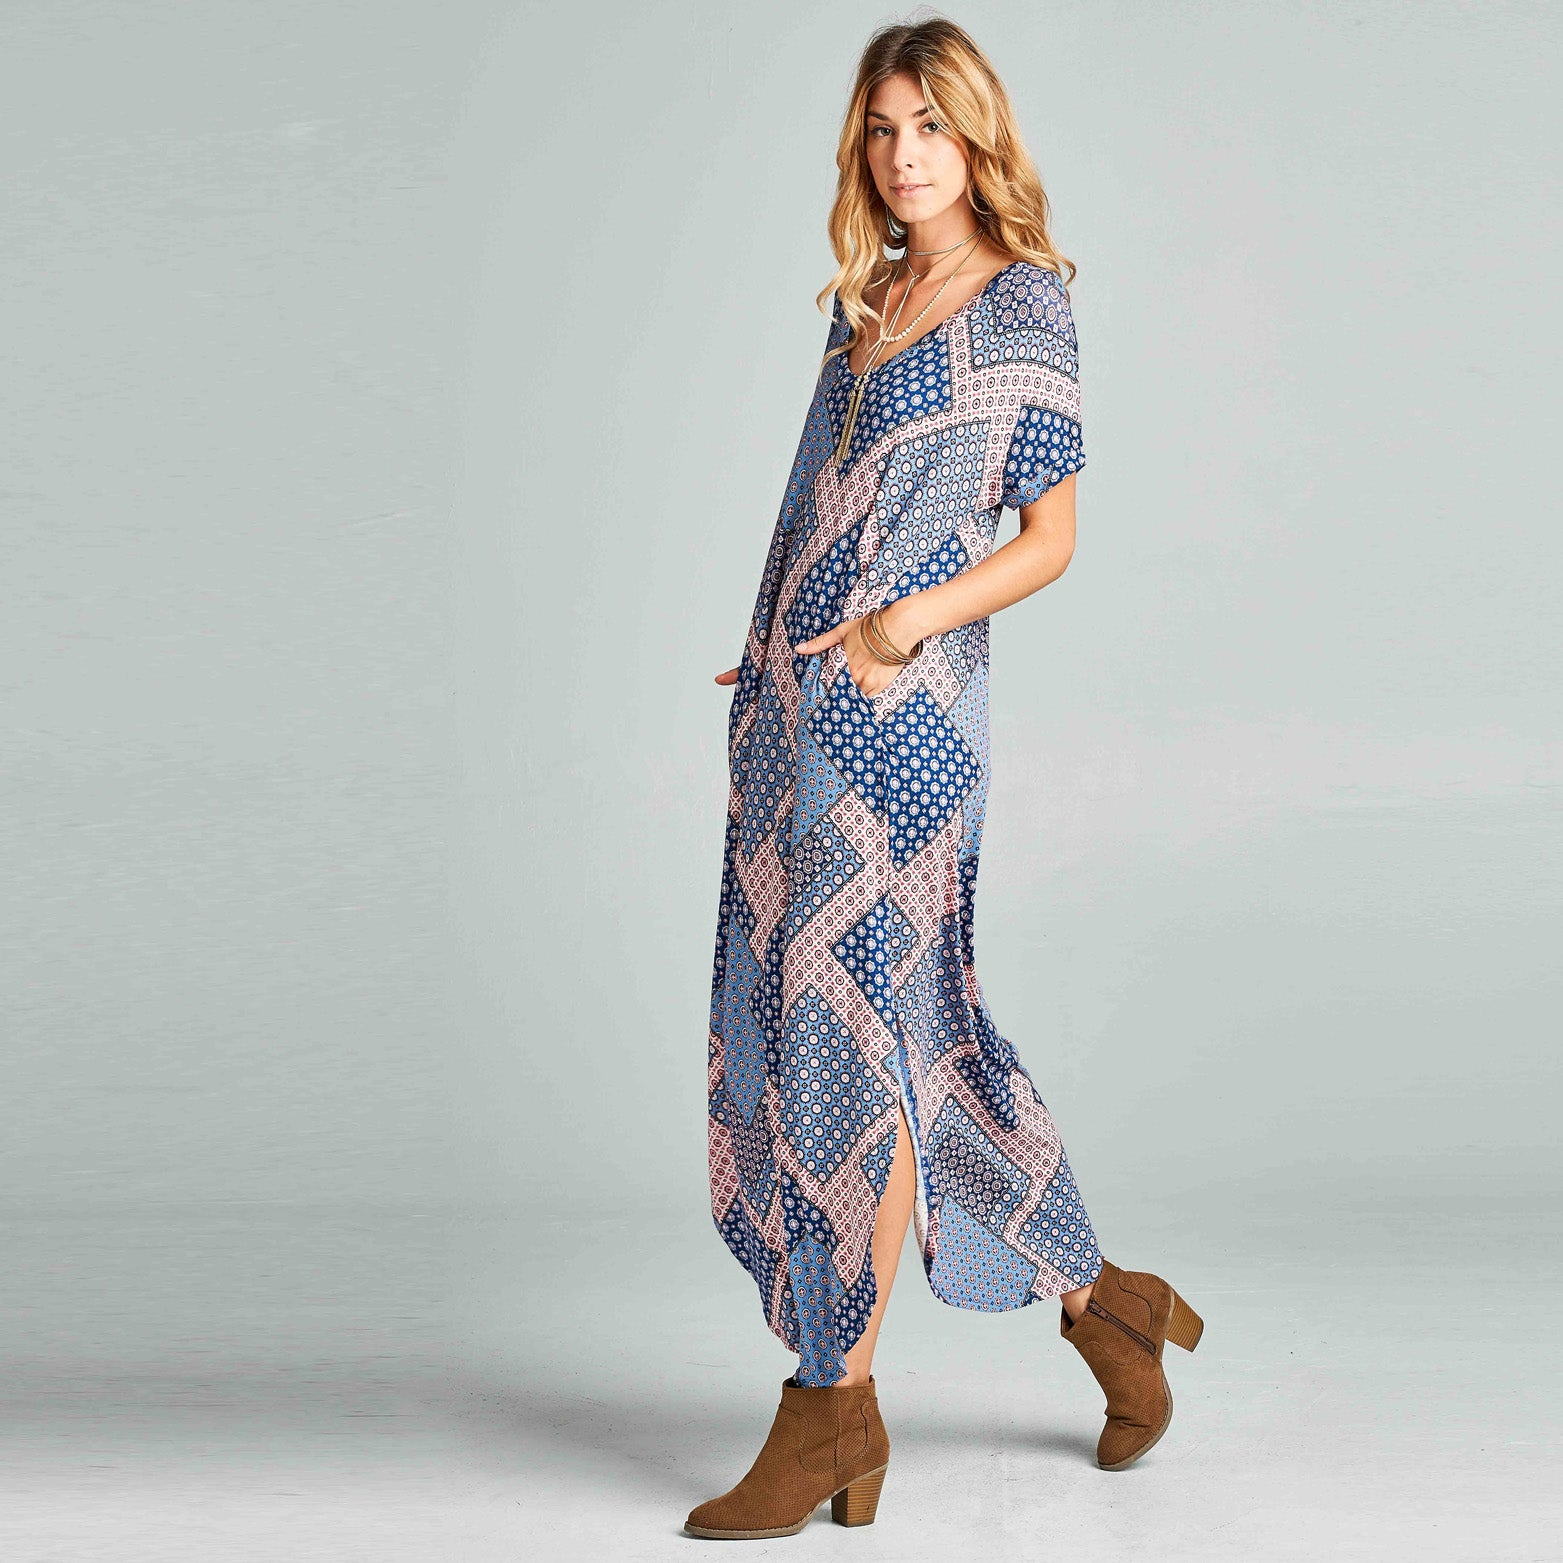 Assorted Abstract Print Maxi Dress - Love, Kuza